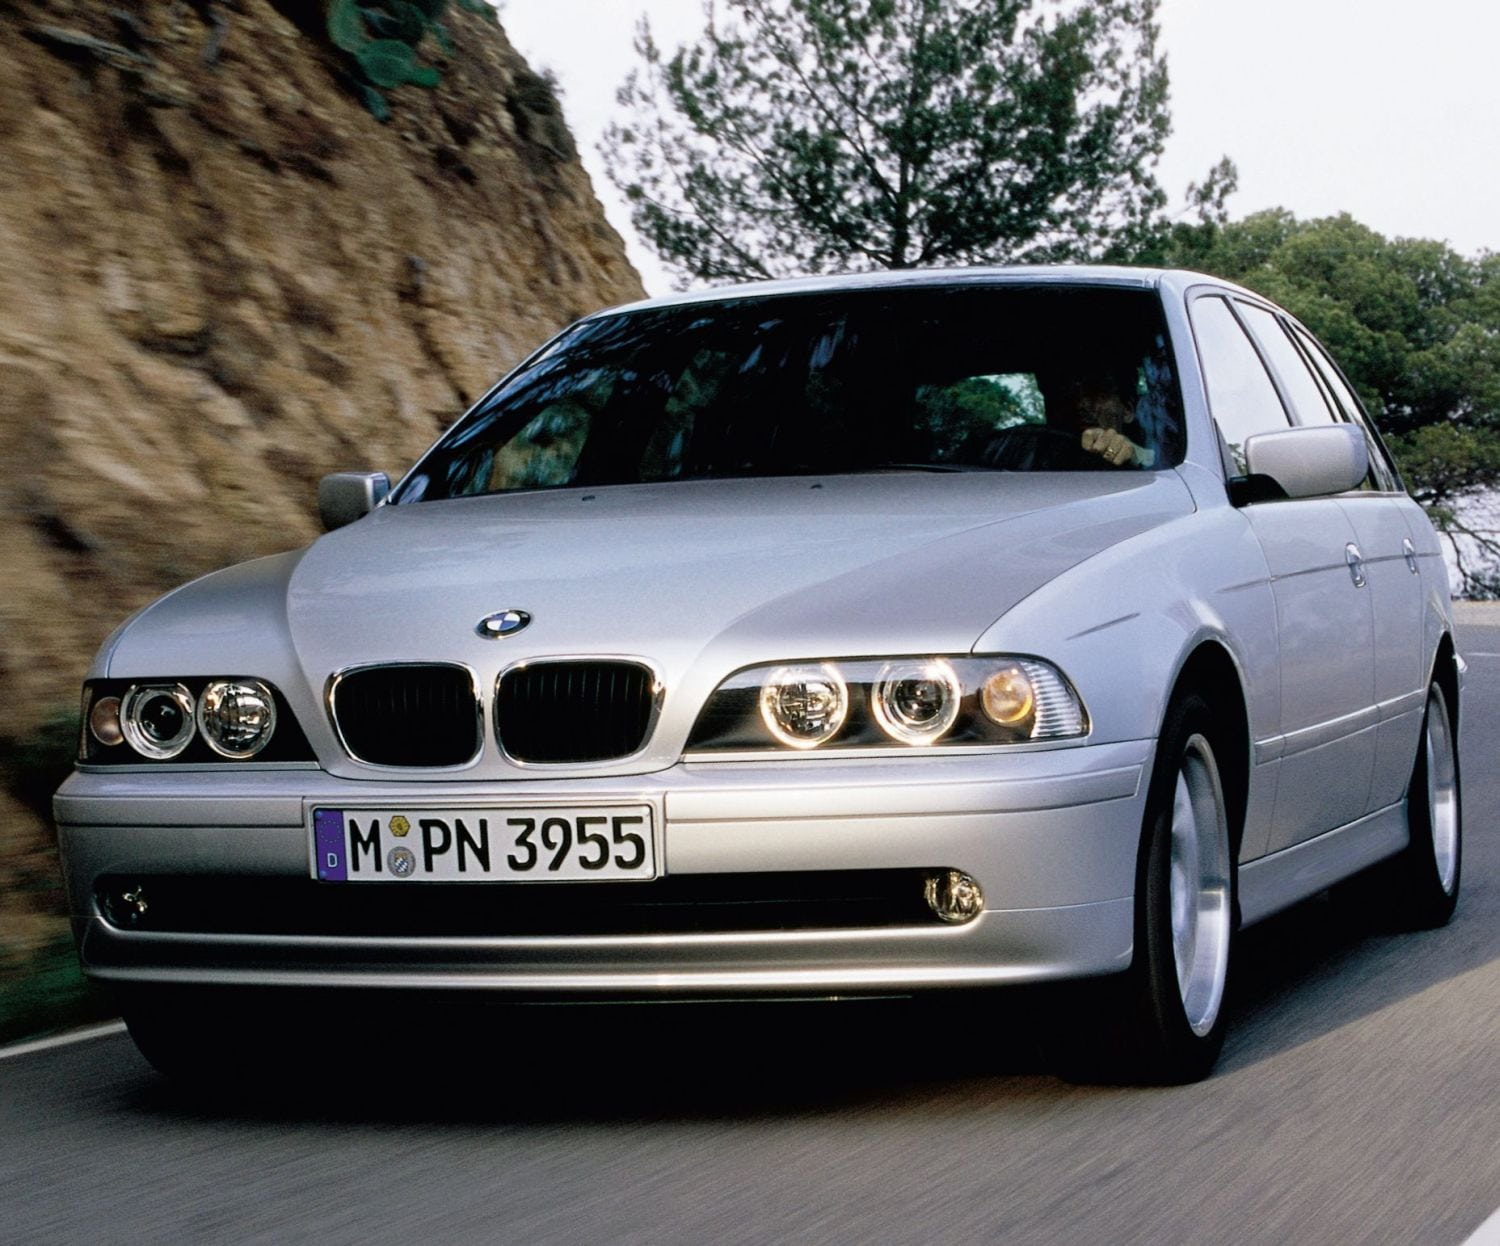 Bmw 530i Touring E39 2000 2004 Specs Speed Power Carbon Dioxide Emissions Fuel Economy And Performance